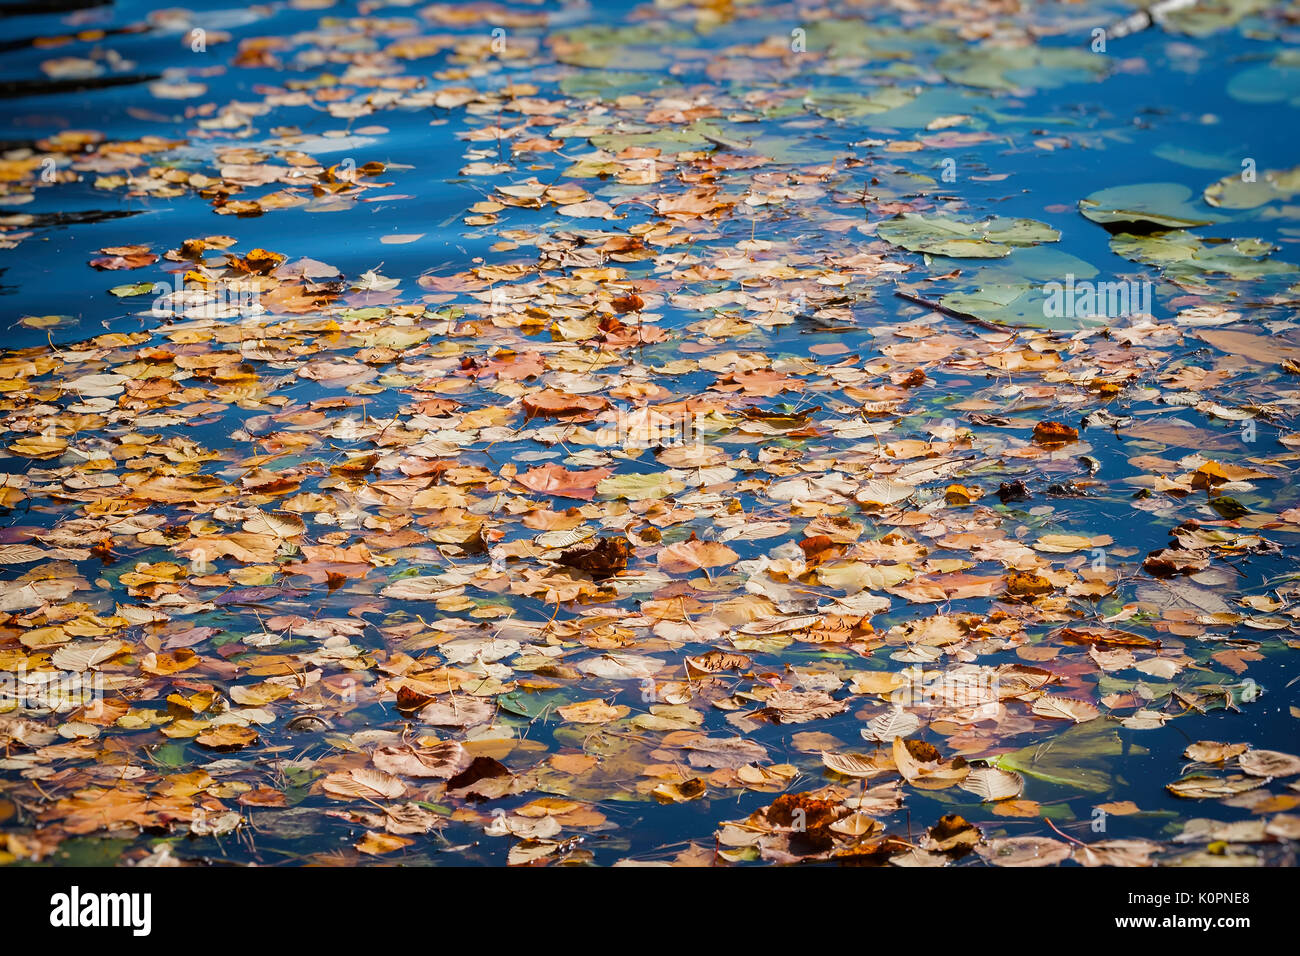 Colorful autumn leaves on cold blue water with sun reflections, gold ripples. Concept of autumn has come - Stock Image